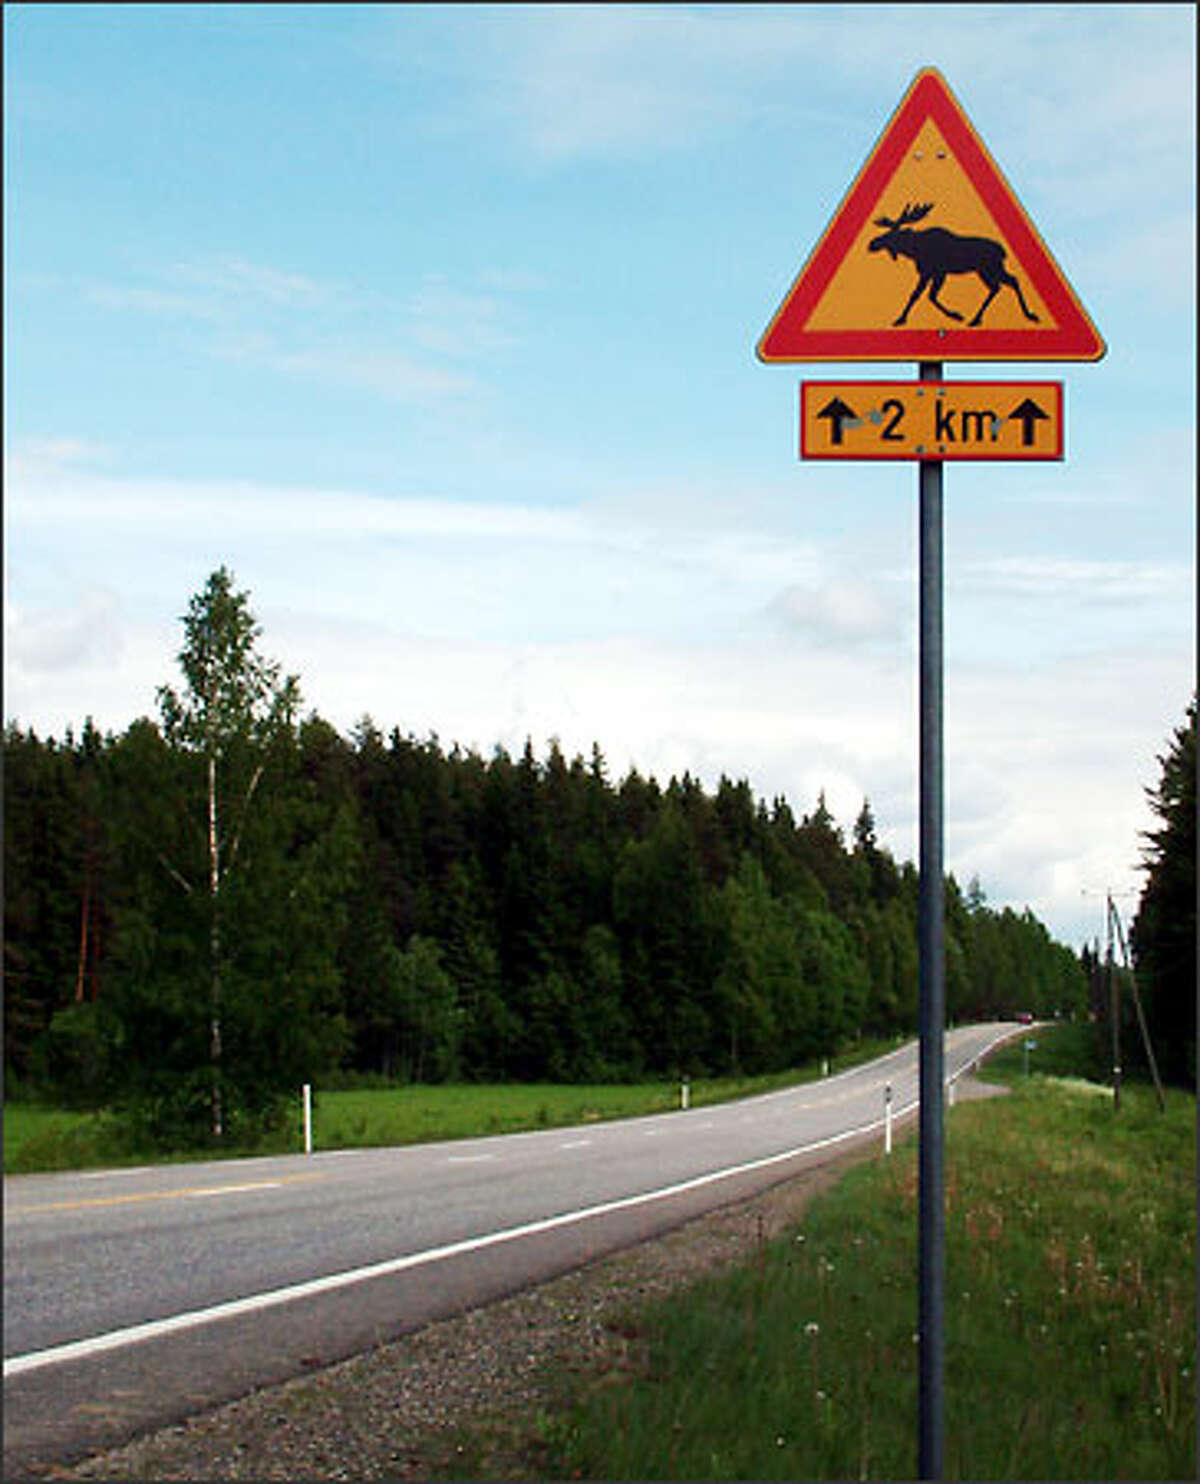 This sign (and the many like it posted with great frequency throughout Finland's highway system) seemed to promise we'd get at least one glimpse of a moose. Sadly, we didn't see hide nor horn of a single one.